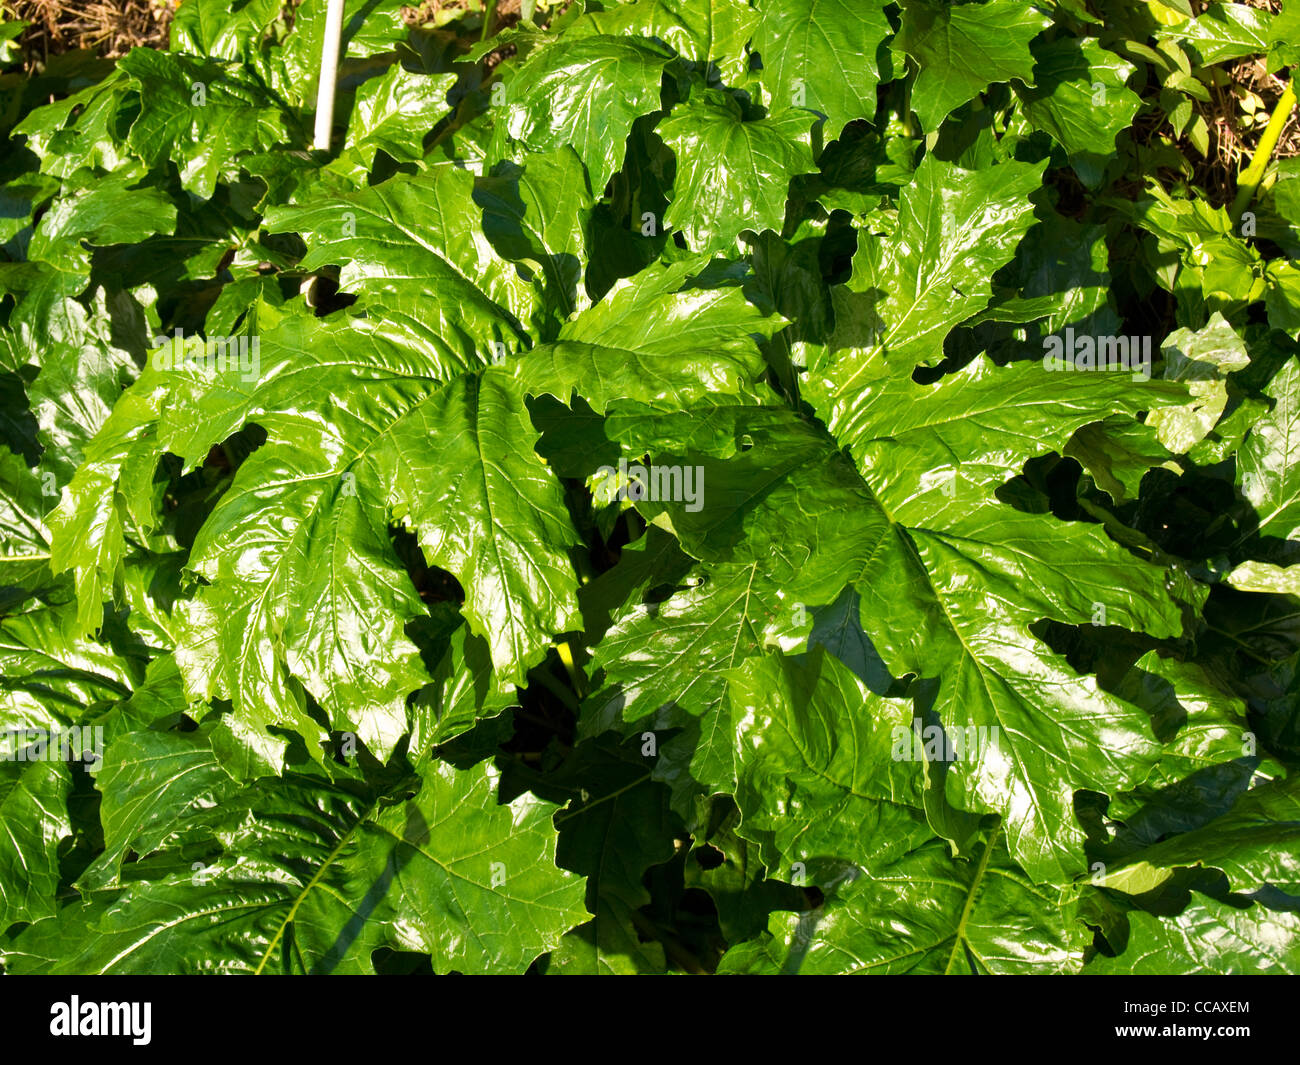 Leaves of Acanthus Mollis - Stock Image